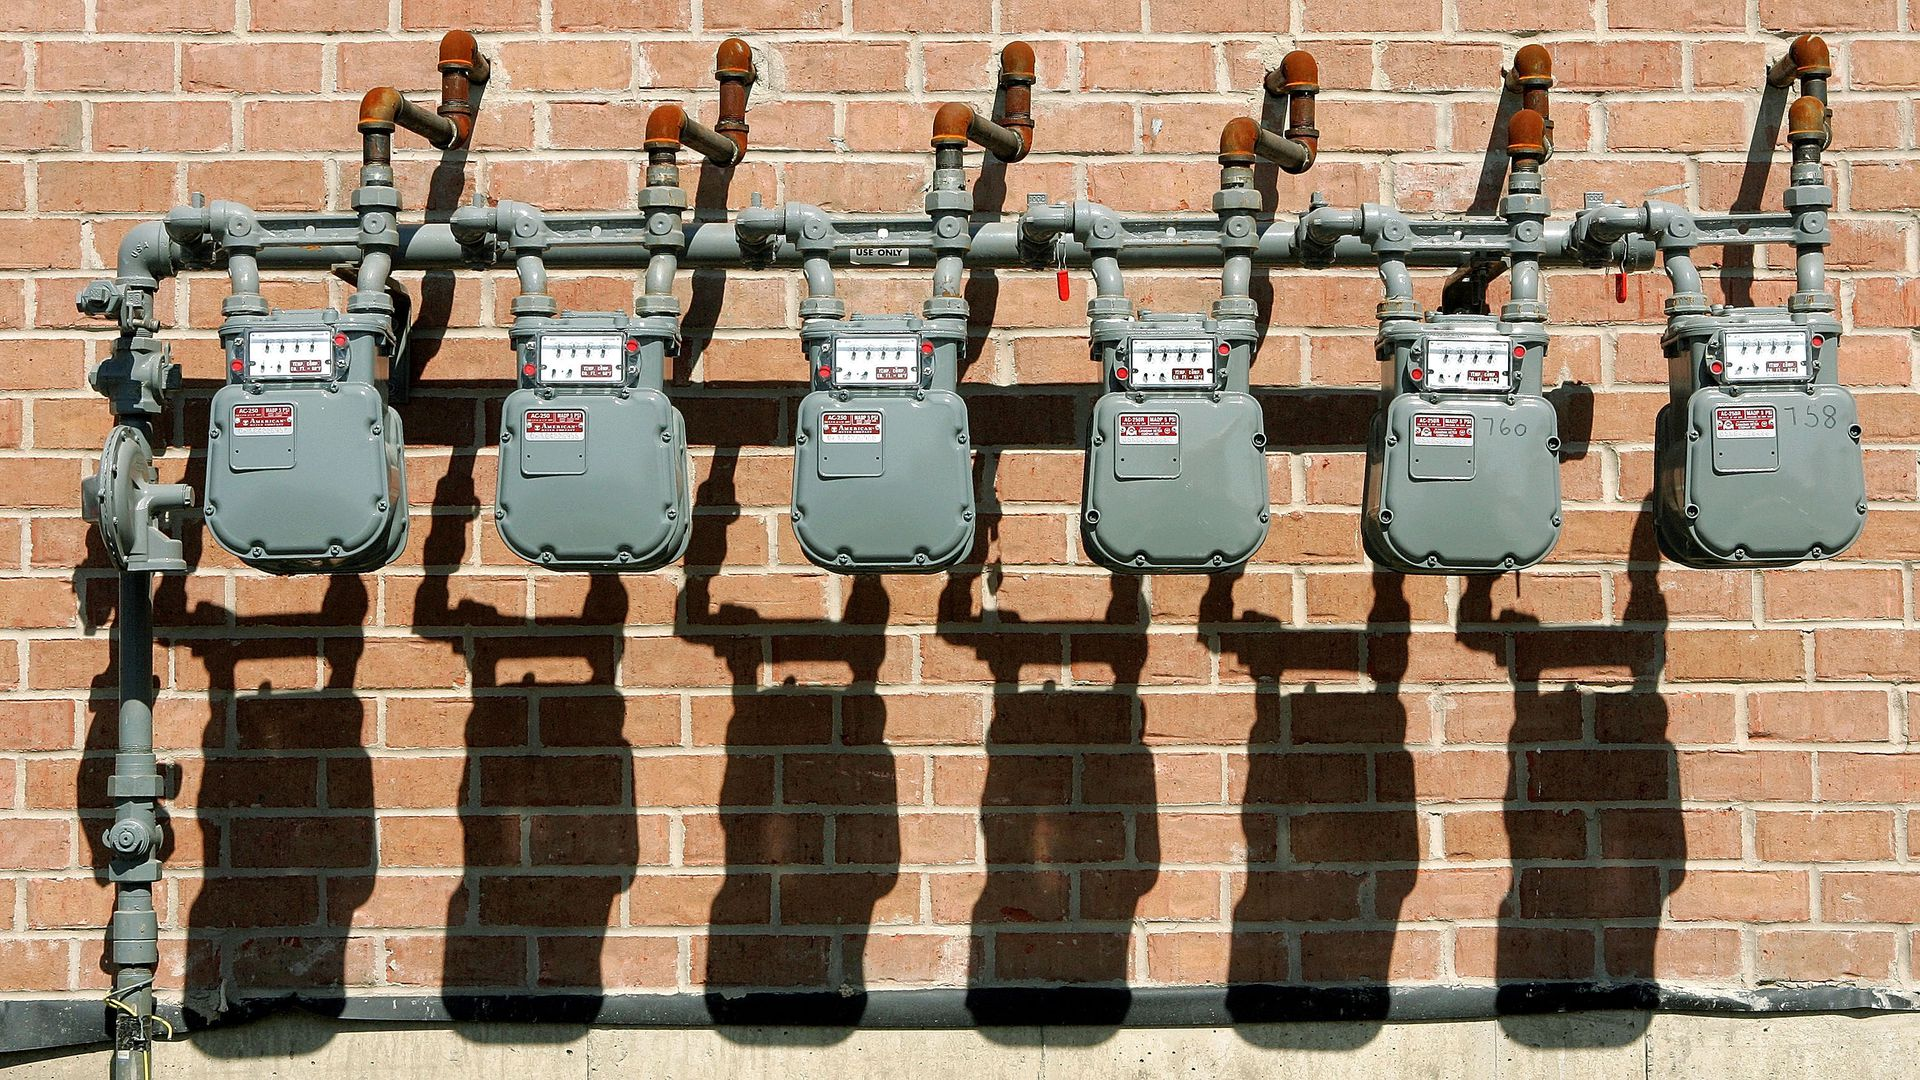 natural gas meters against a brick wall